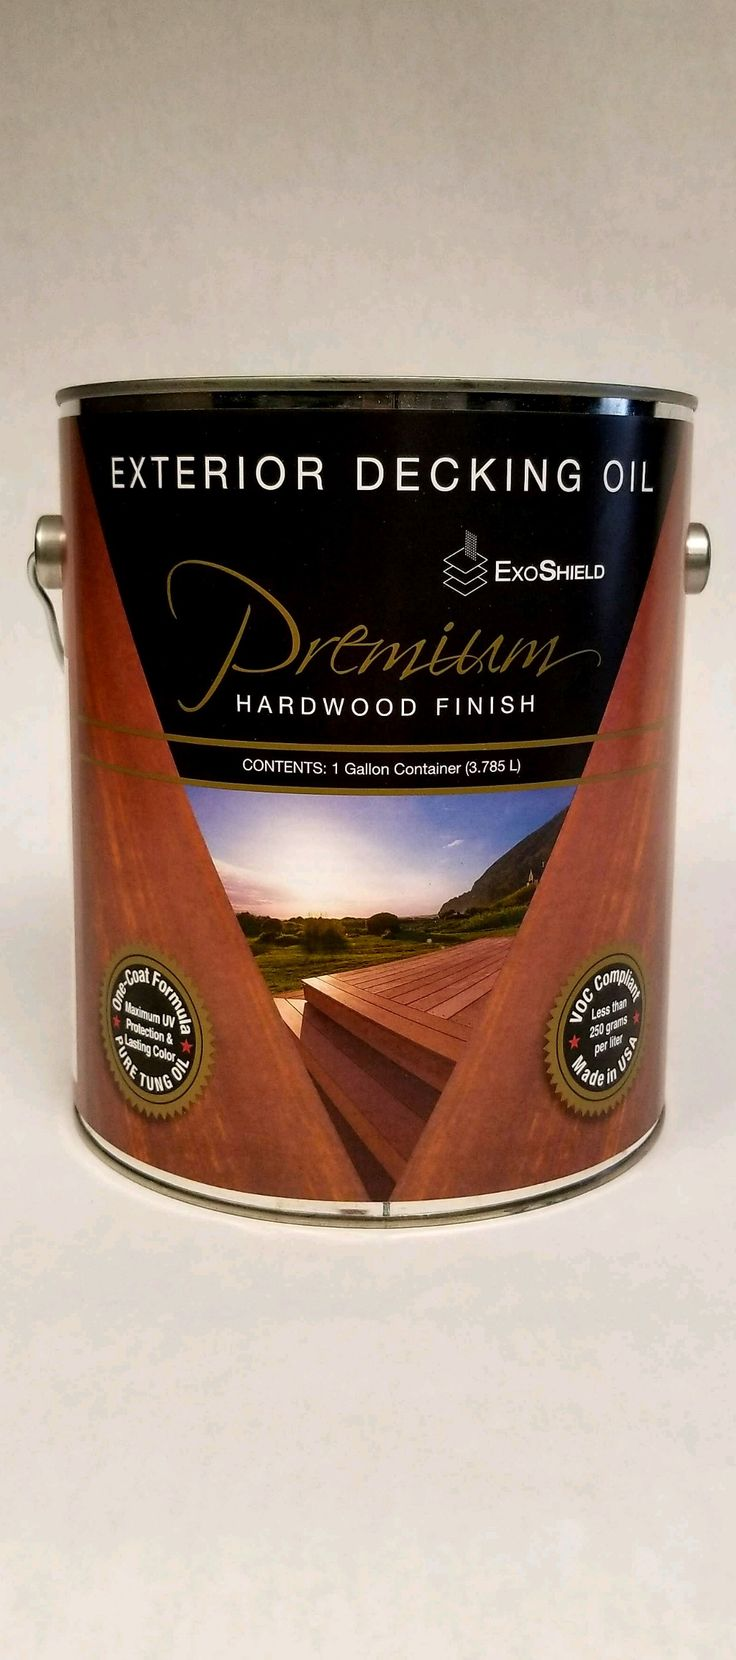 ExoShield Hardwood Decking Oil by Nova USA Wood. The Finest Exterior Wood Finish on the Market. Pure Tung Oil and Pigment Deck Finish. UV Protection, Low VOC, California CARB Compliant, Made in the USA.